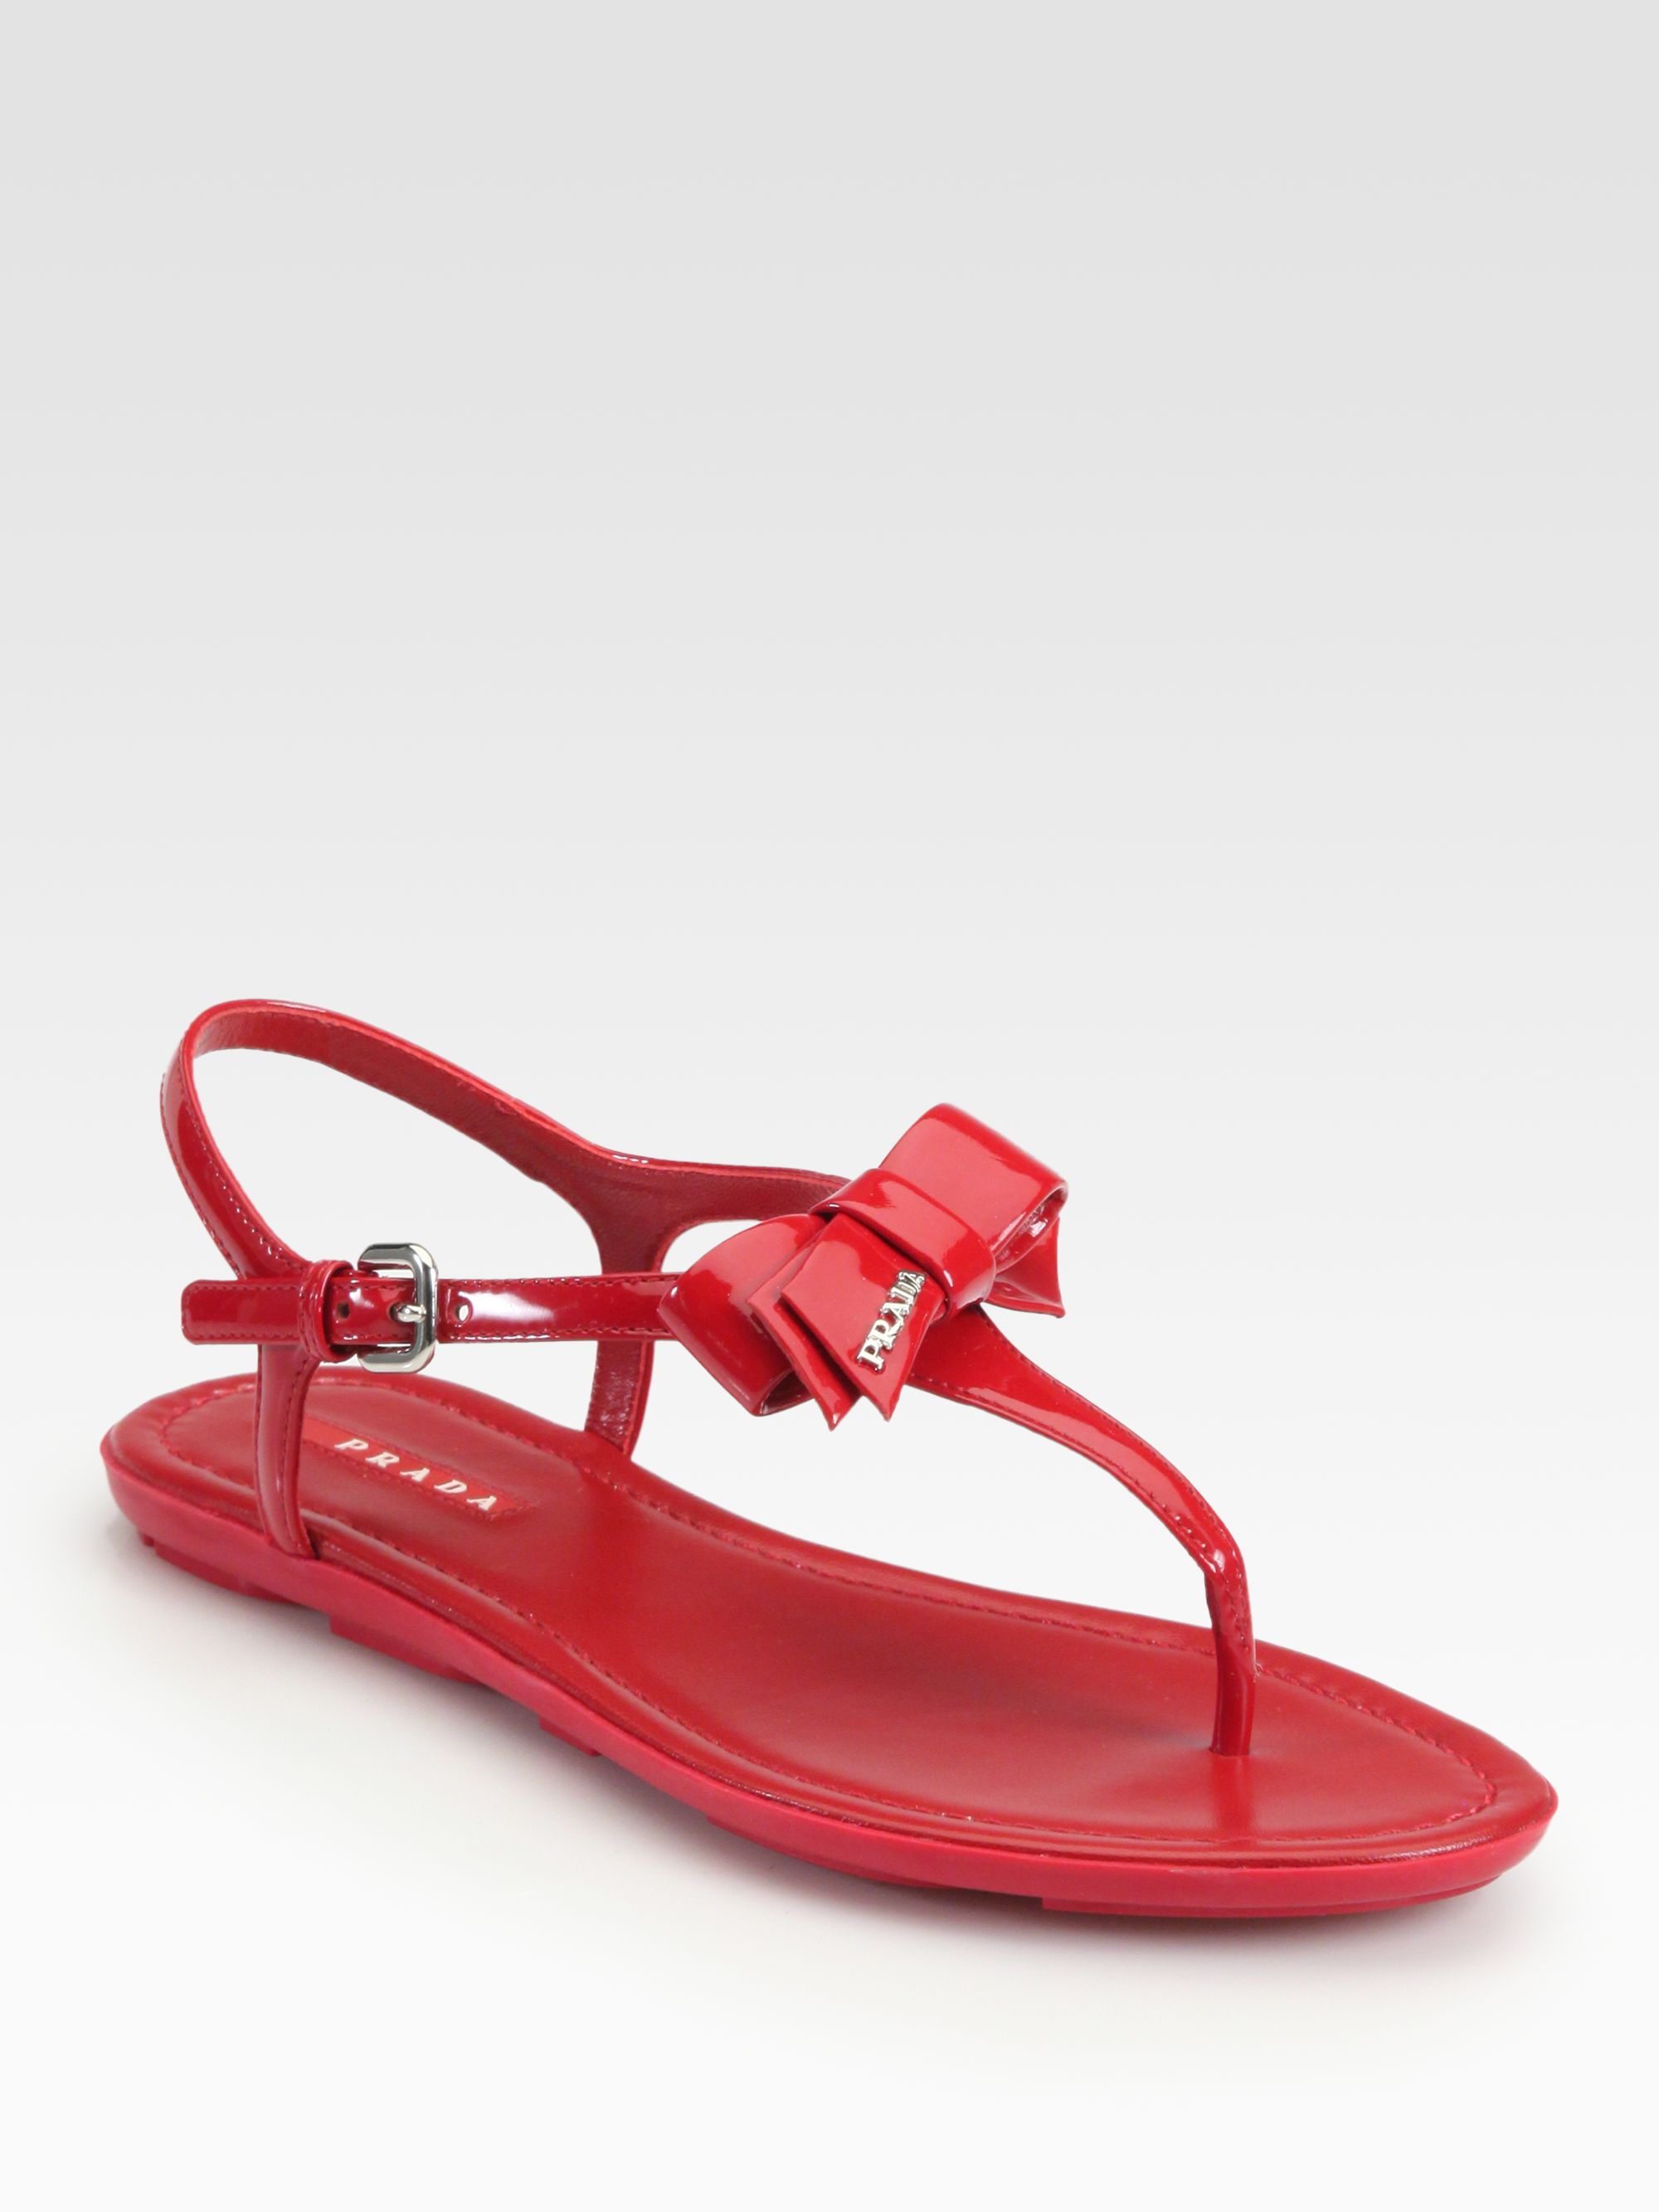 86f0a588d Lyst - Prada Patent Leather Bow Thong Sandals in Red